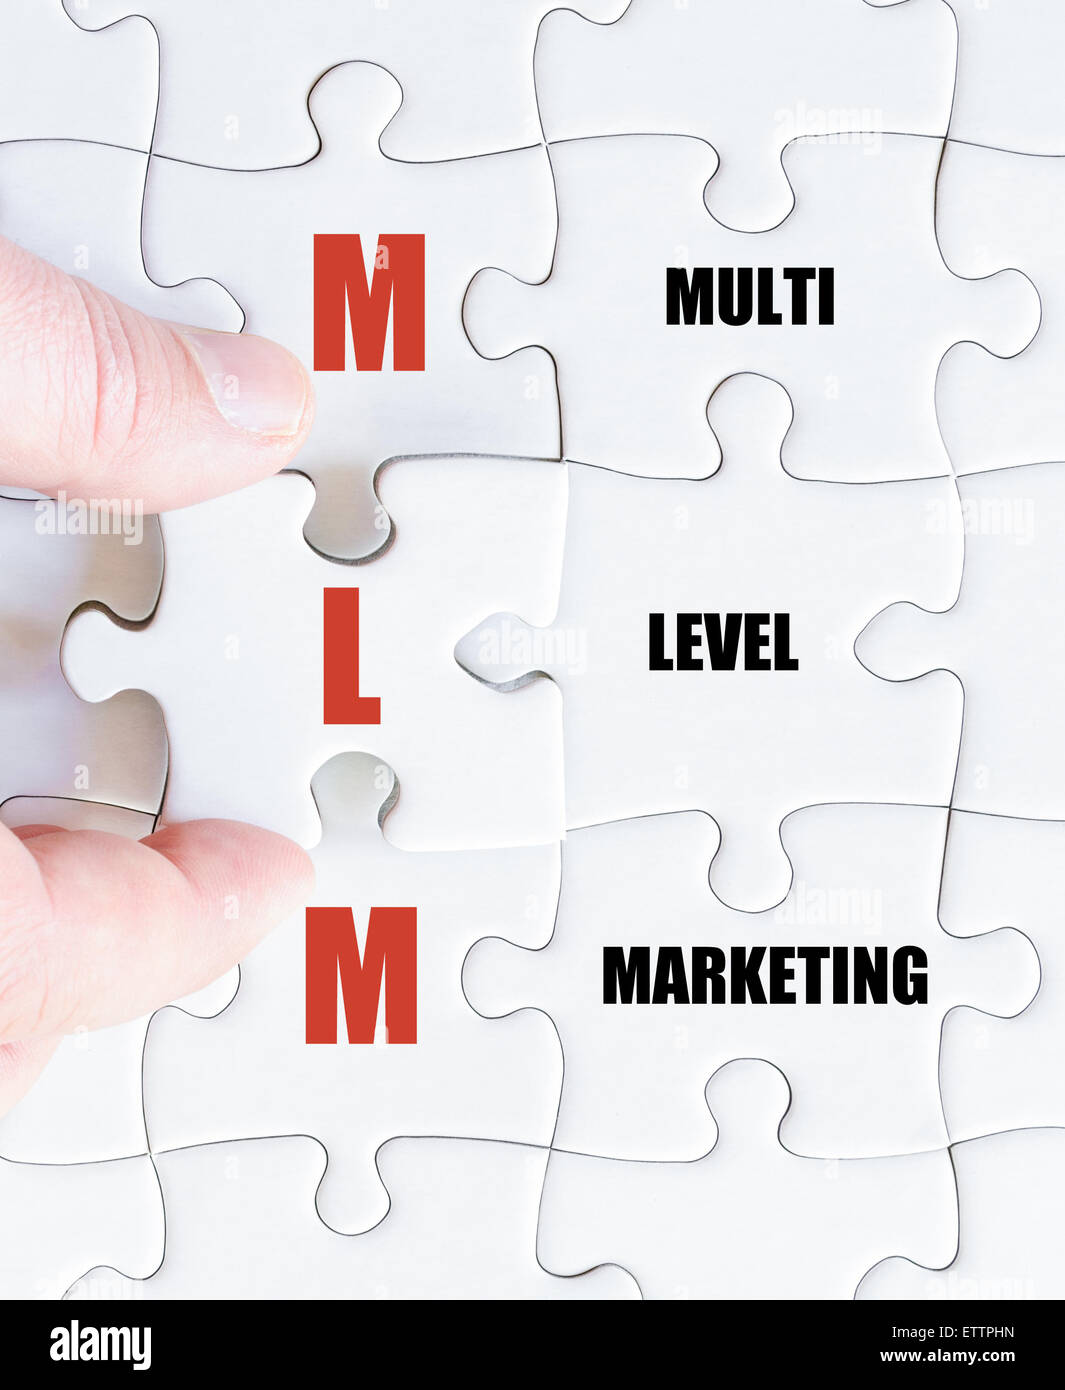 Concept image of Business Acronym MLM as Multi Level Marketing Stock Photo